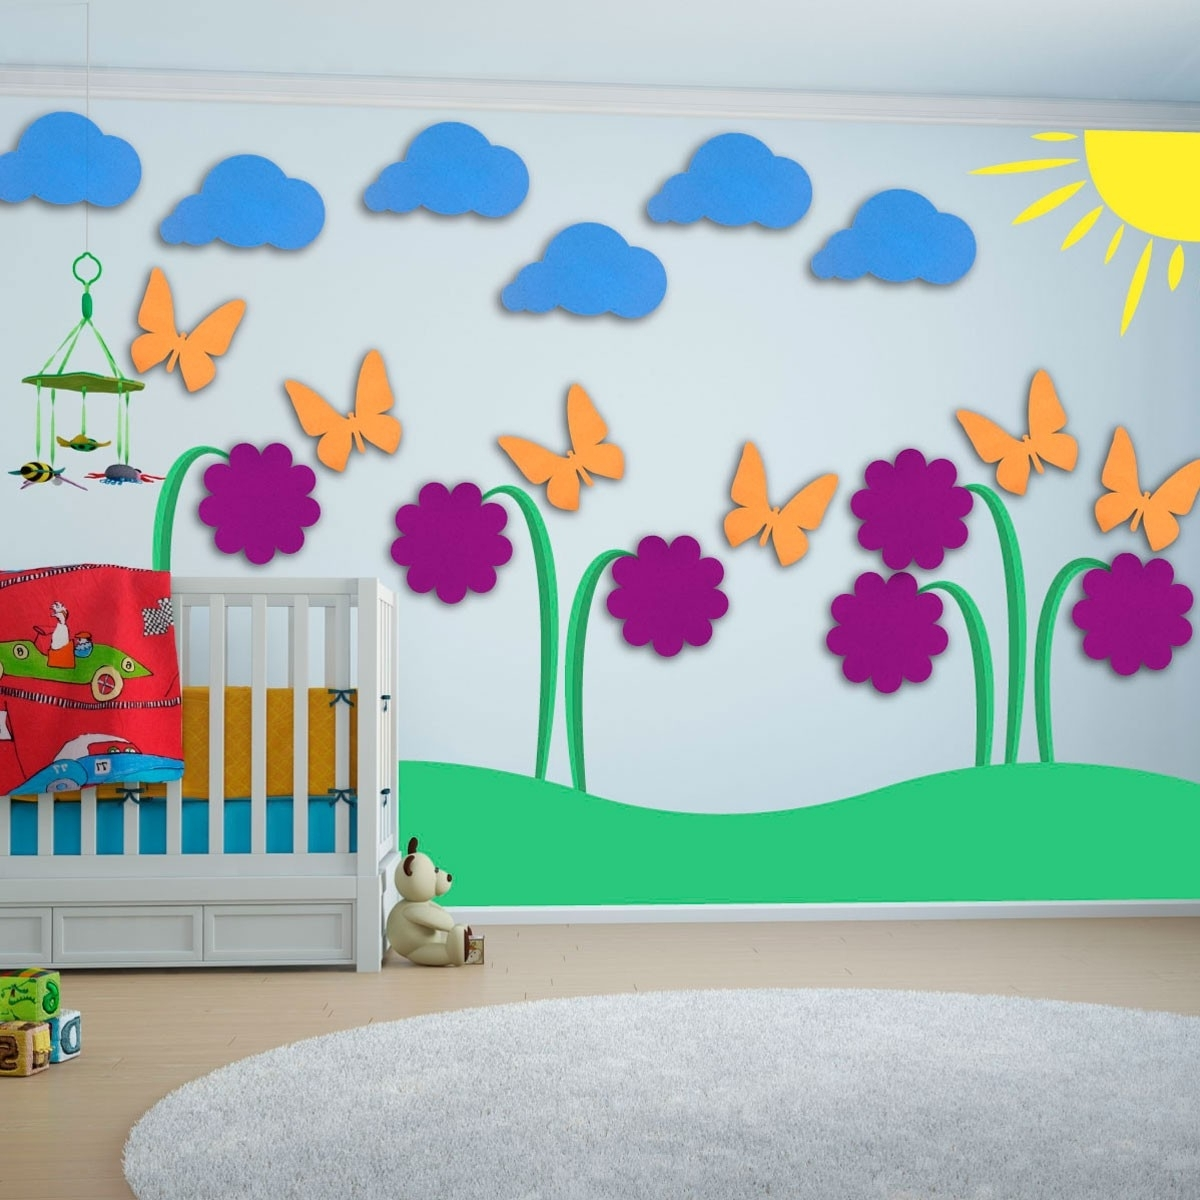 Creative kids wall art ideas custom home design Creative wall hangings